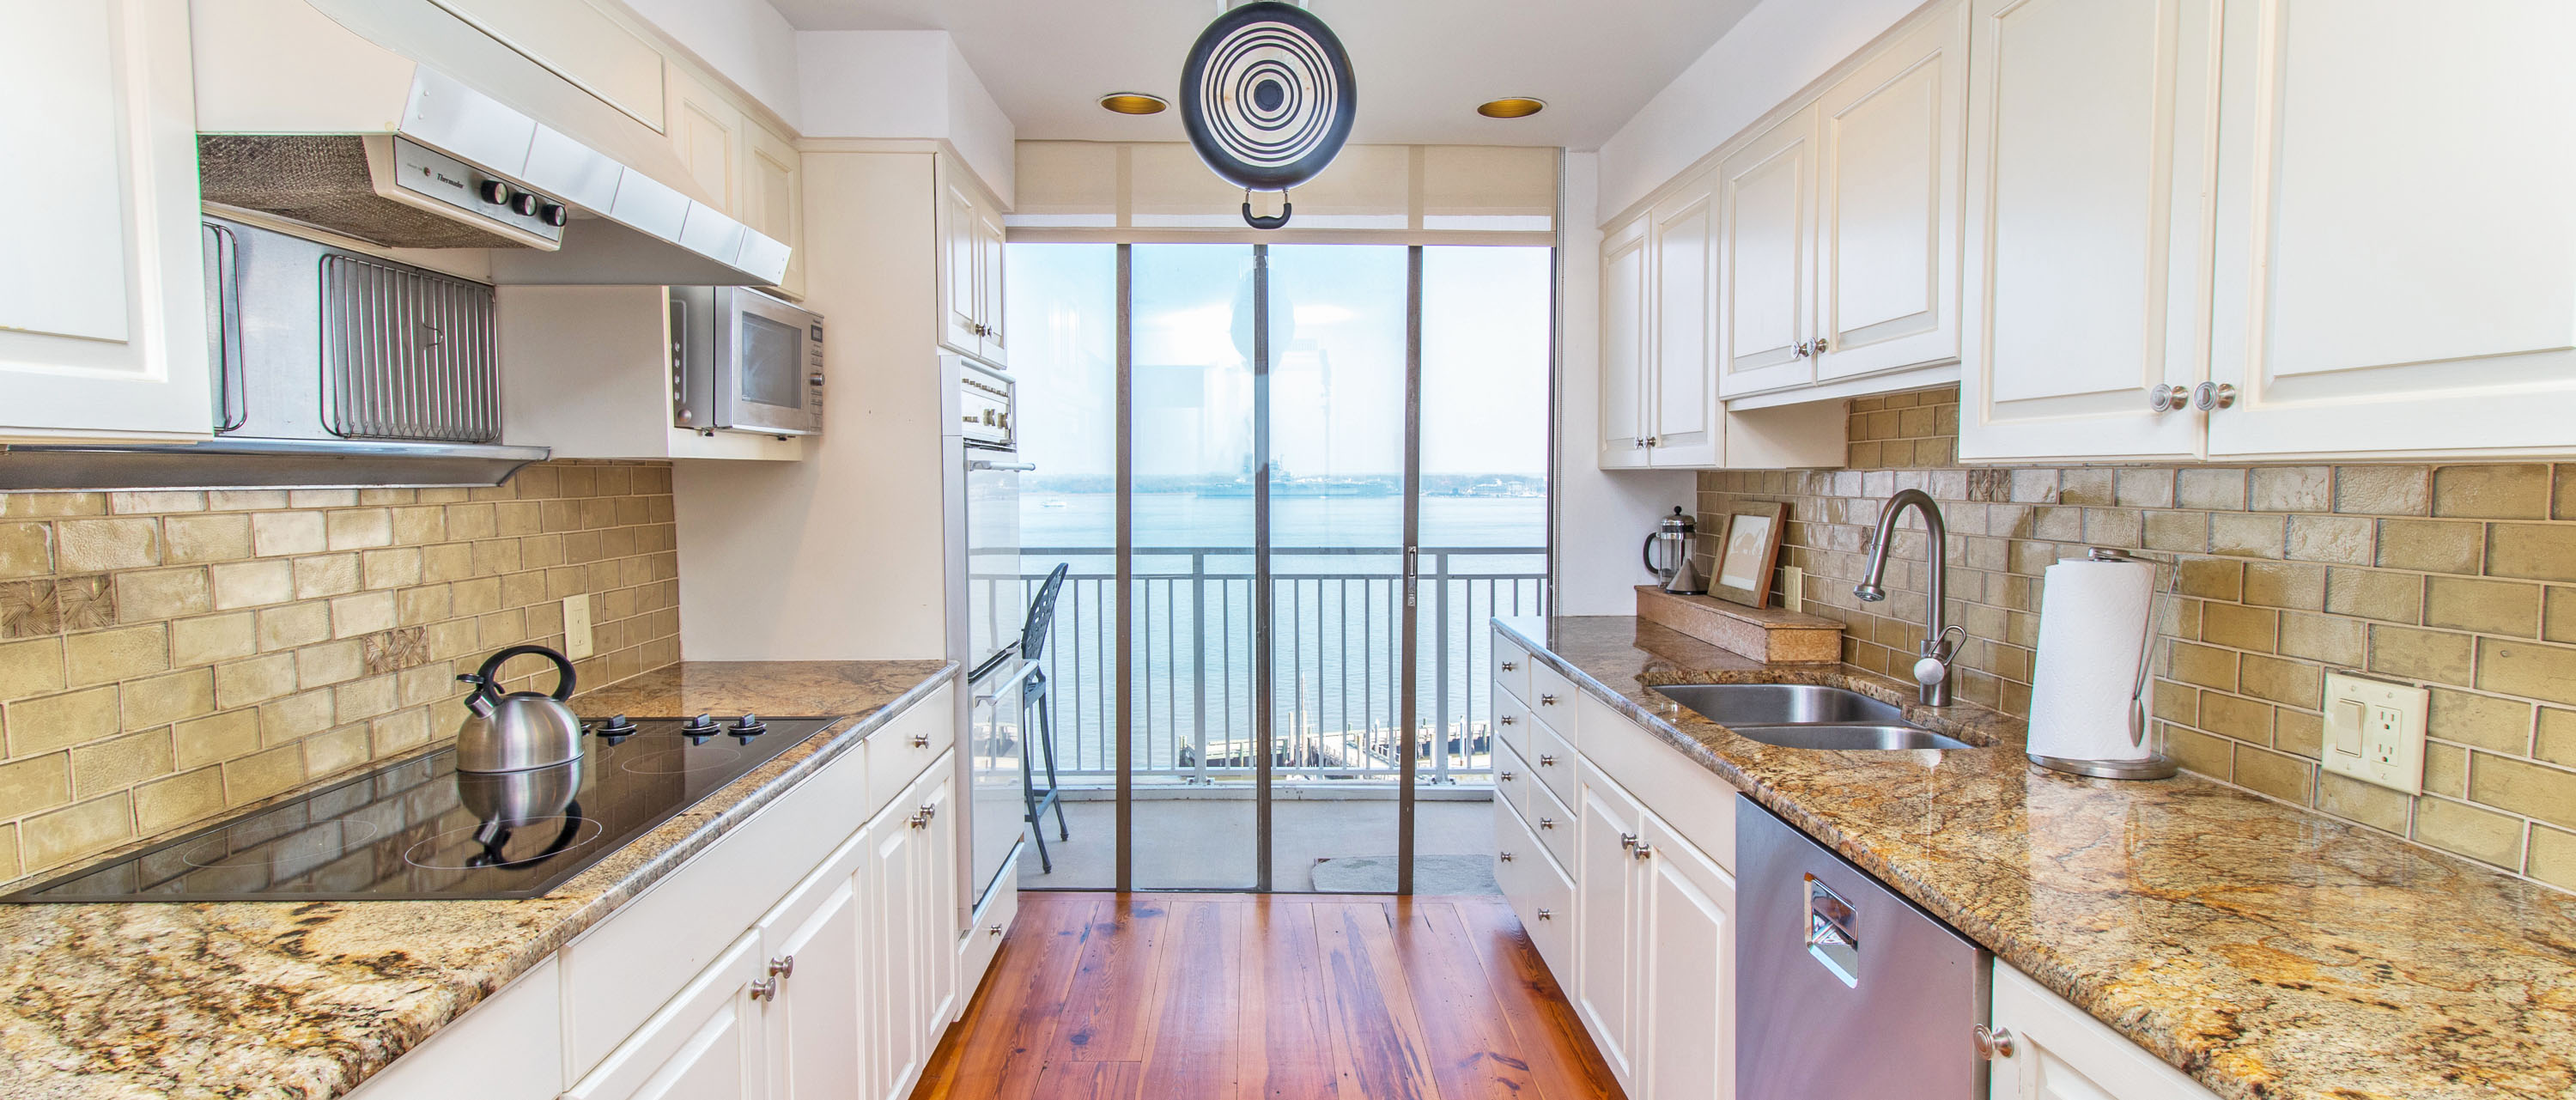 330 Concord Street FG, Dockside kitchen